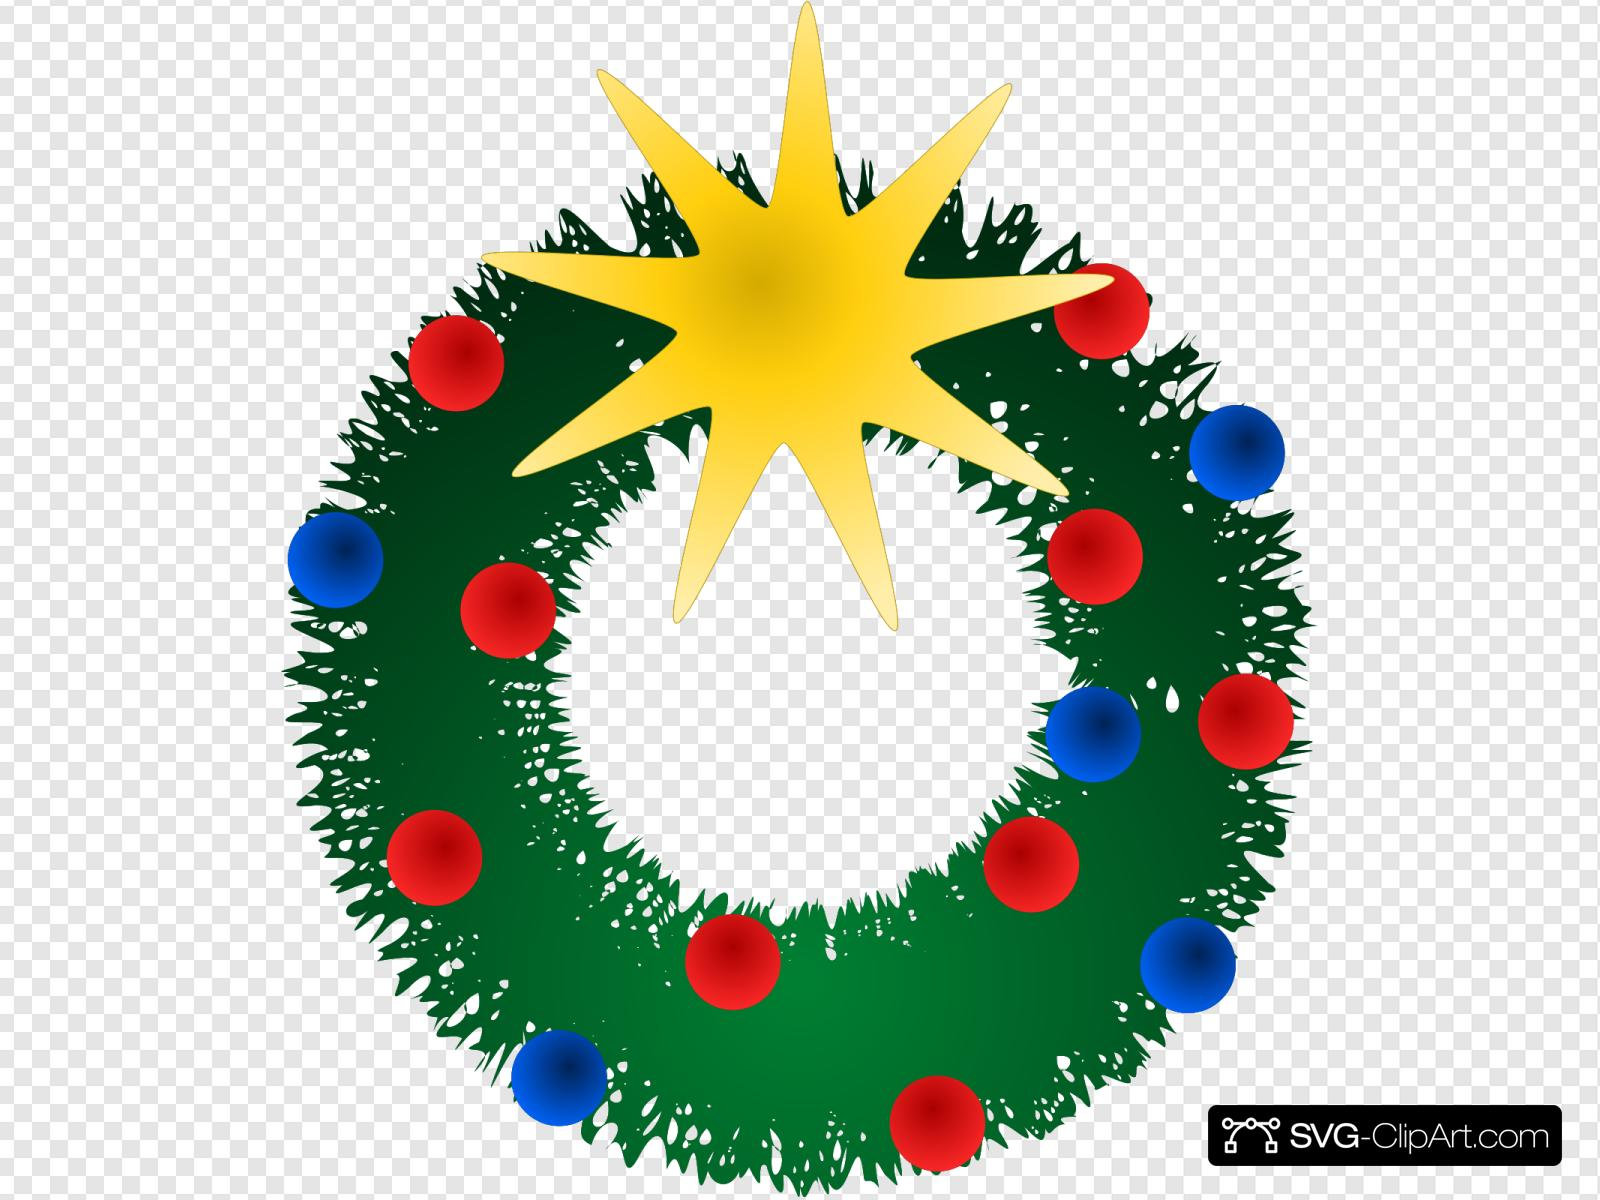 Christmas Wreath Clipart.Christmas Wreath Clip Art Icon And Svg Svg Clipart